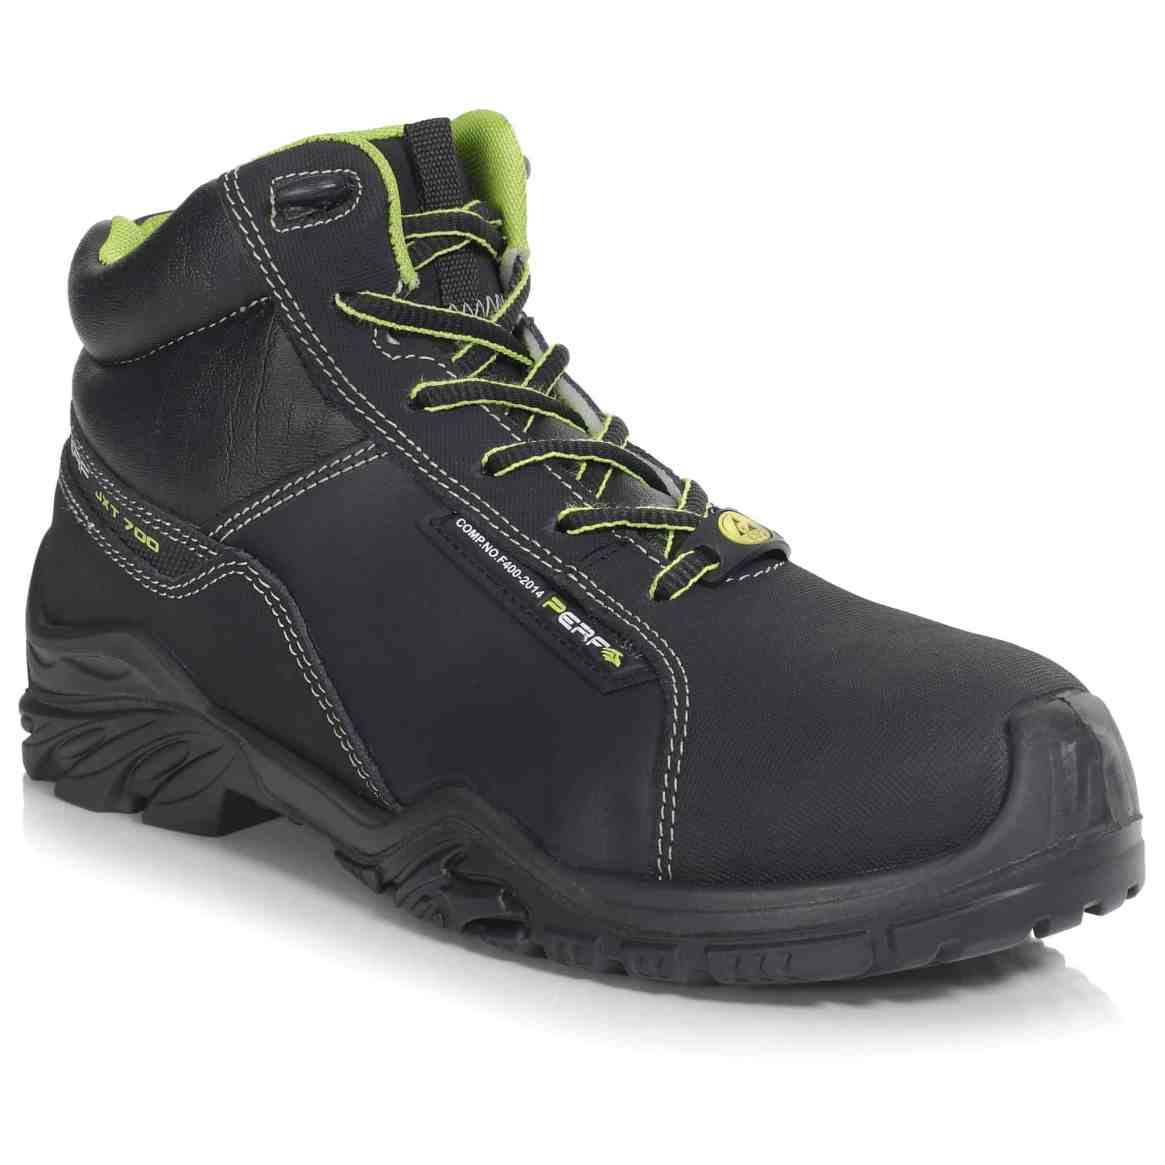 S3 SRC ESD - ESD Safety Hiker Boot